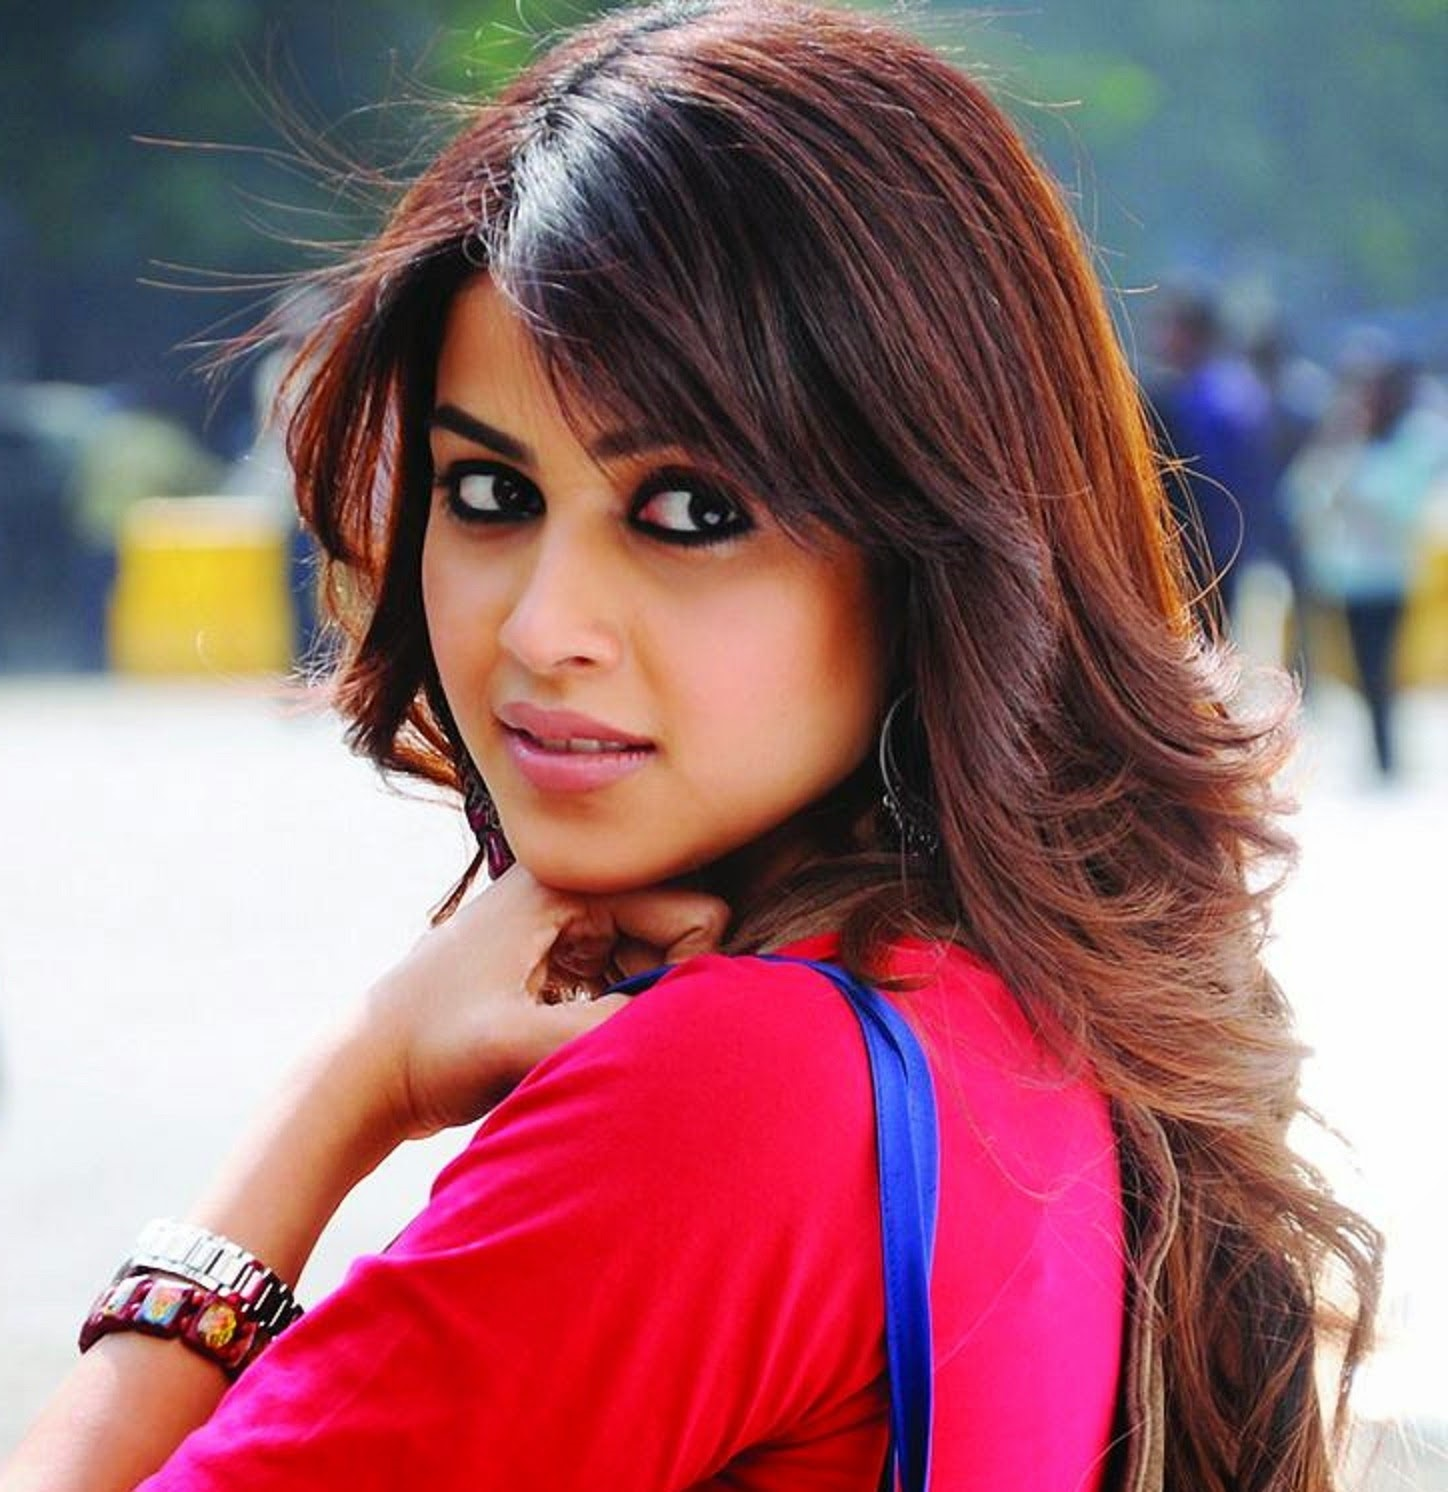 Genelia d souza wallpapers 30 hd pics - Desi actress wallpaper ...